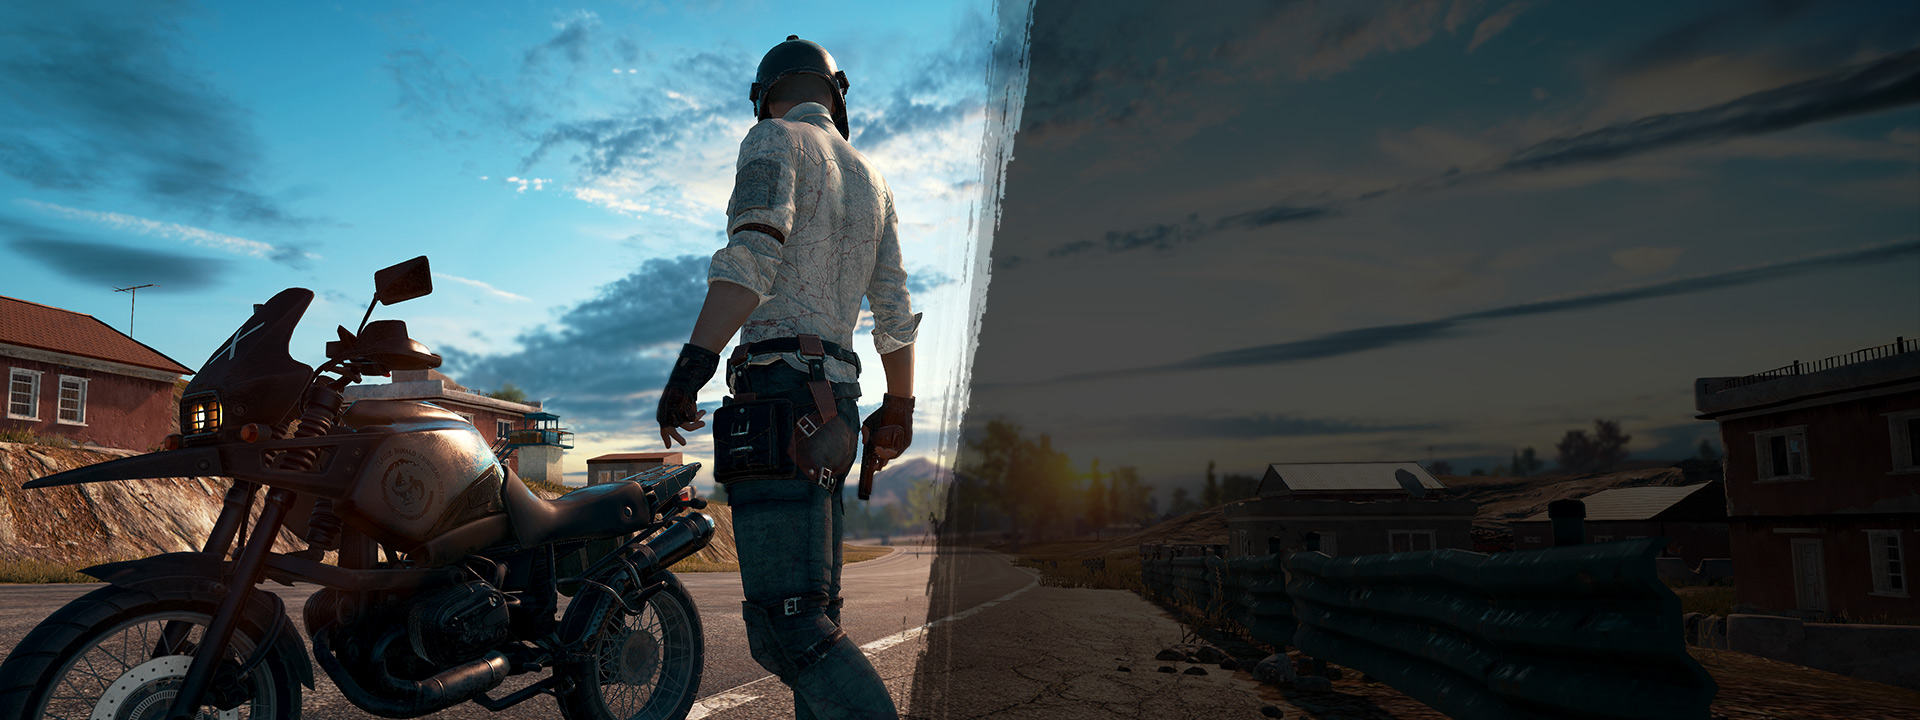 PlayerUnknown's character standing in front of motorcycle in the street with pistol